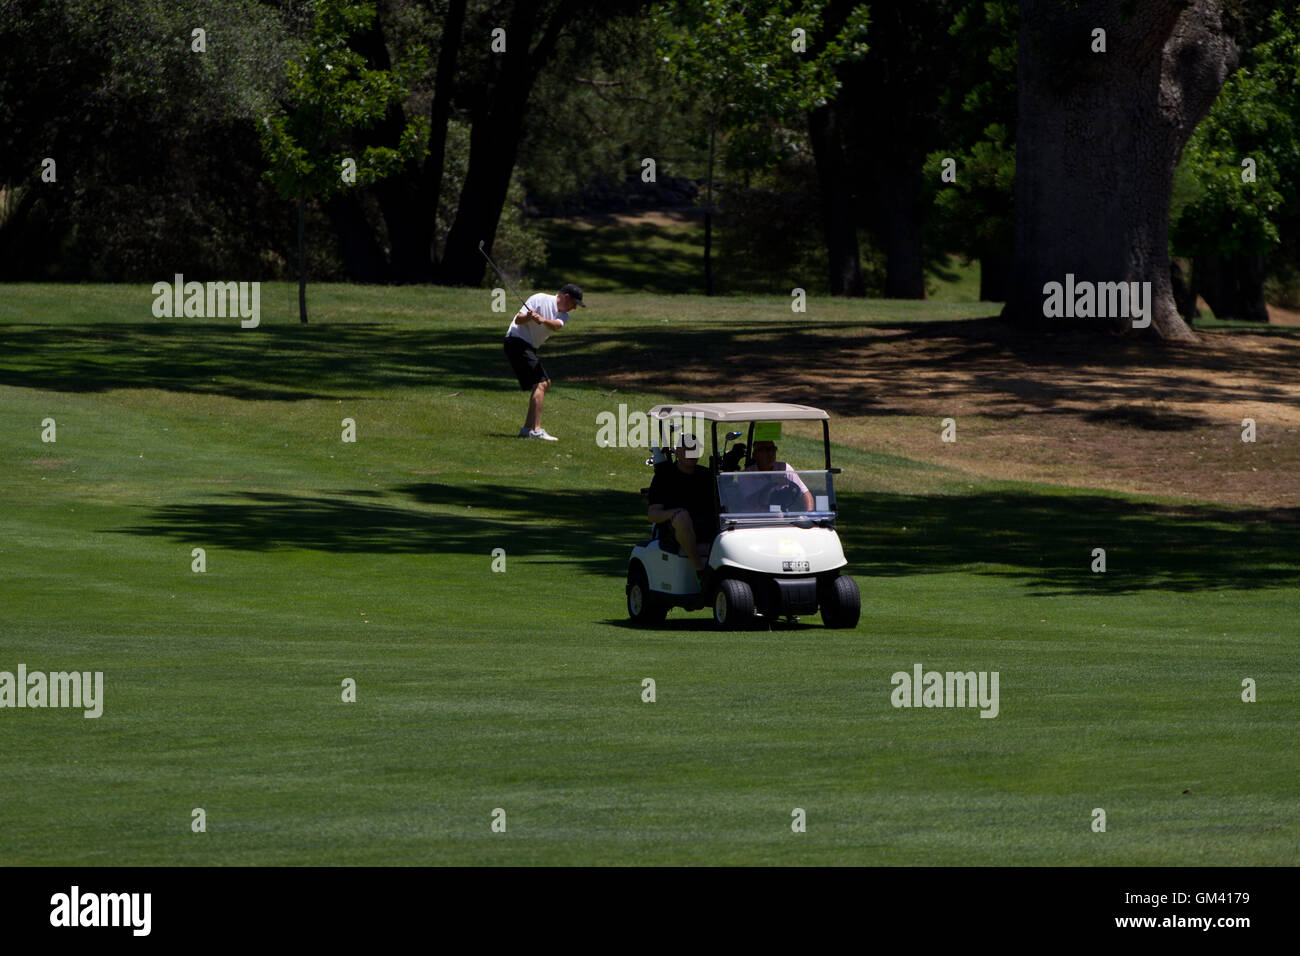 Golf buggy and players on golf course. California. USA - Stock Image